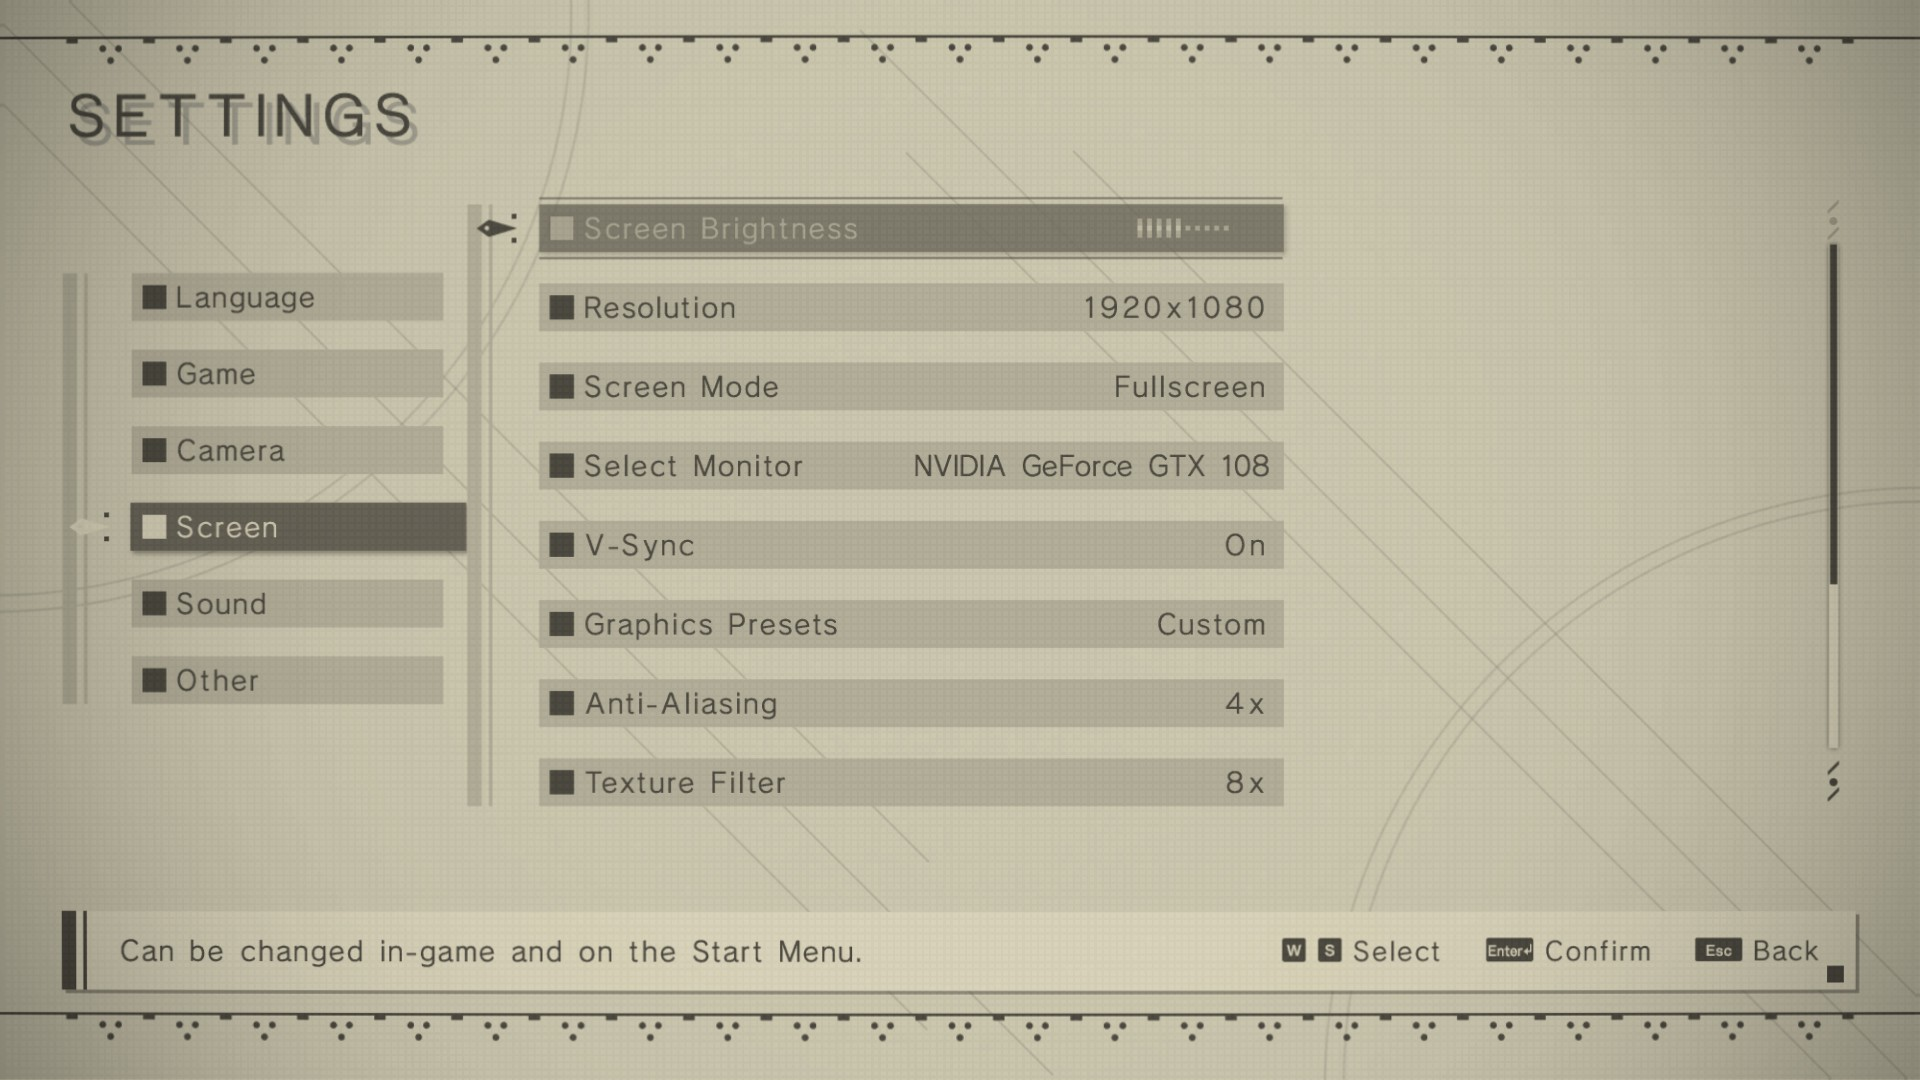 Nier Automata supports 21:9 on PC, but has 60FPS lock